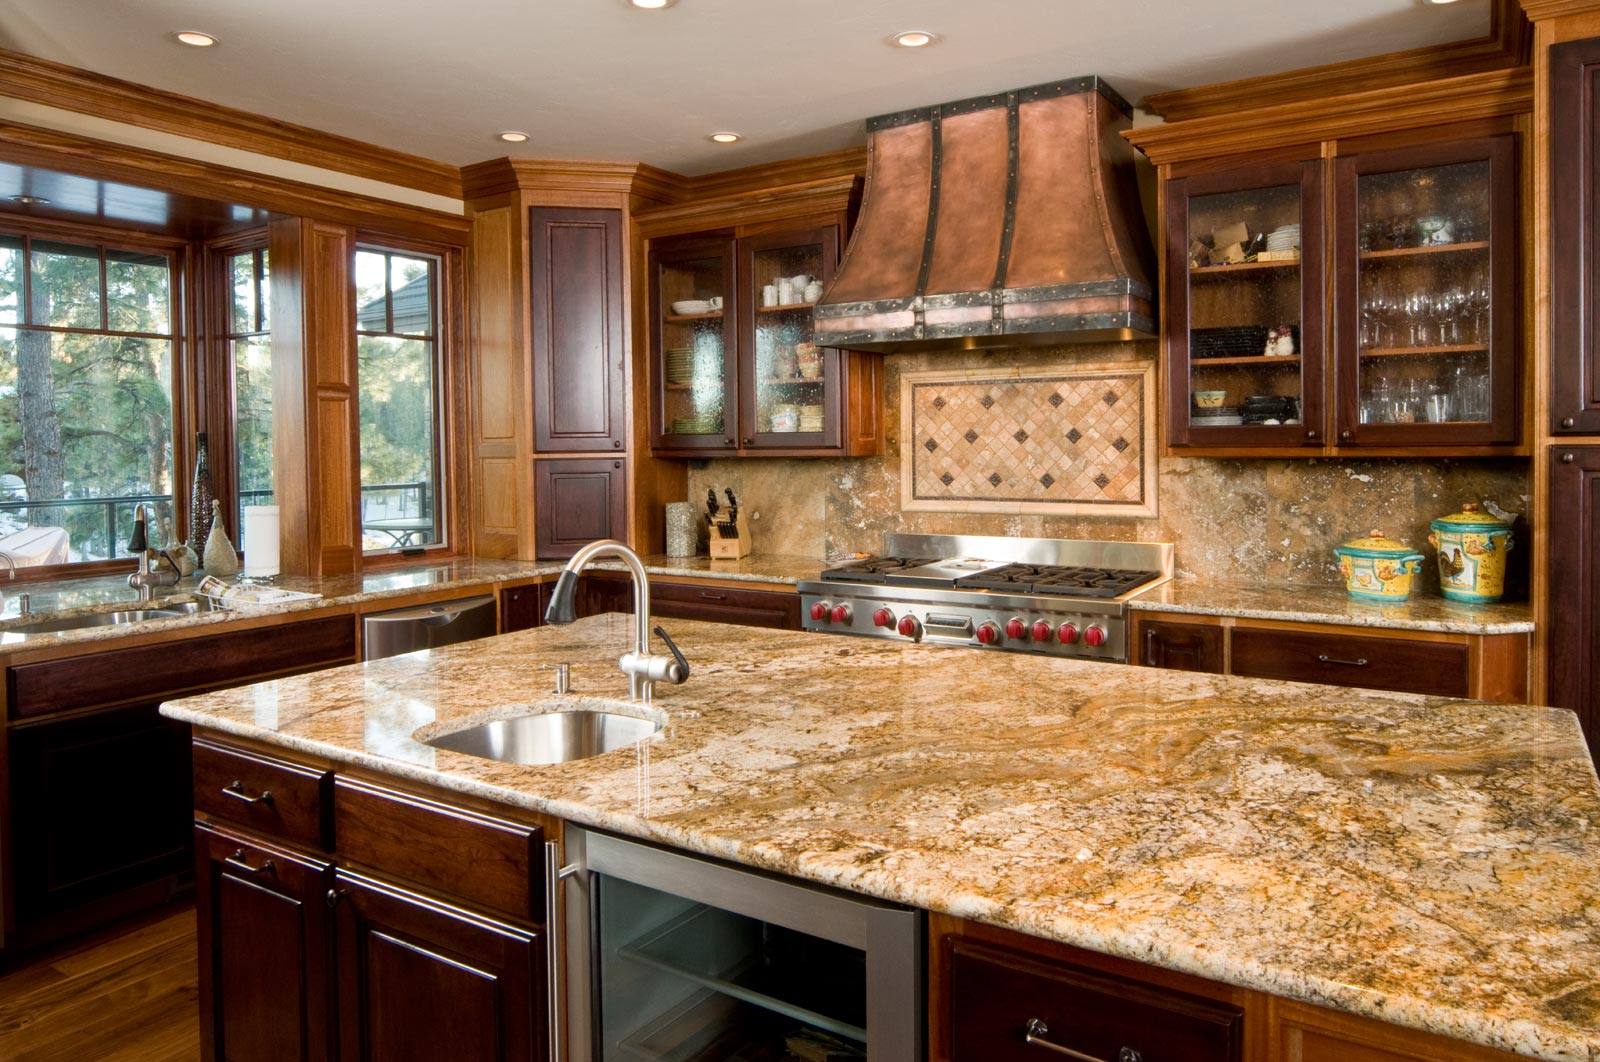 Kitchens with Quartz Countertops